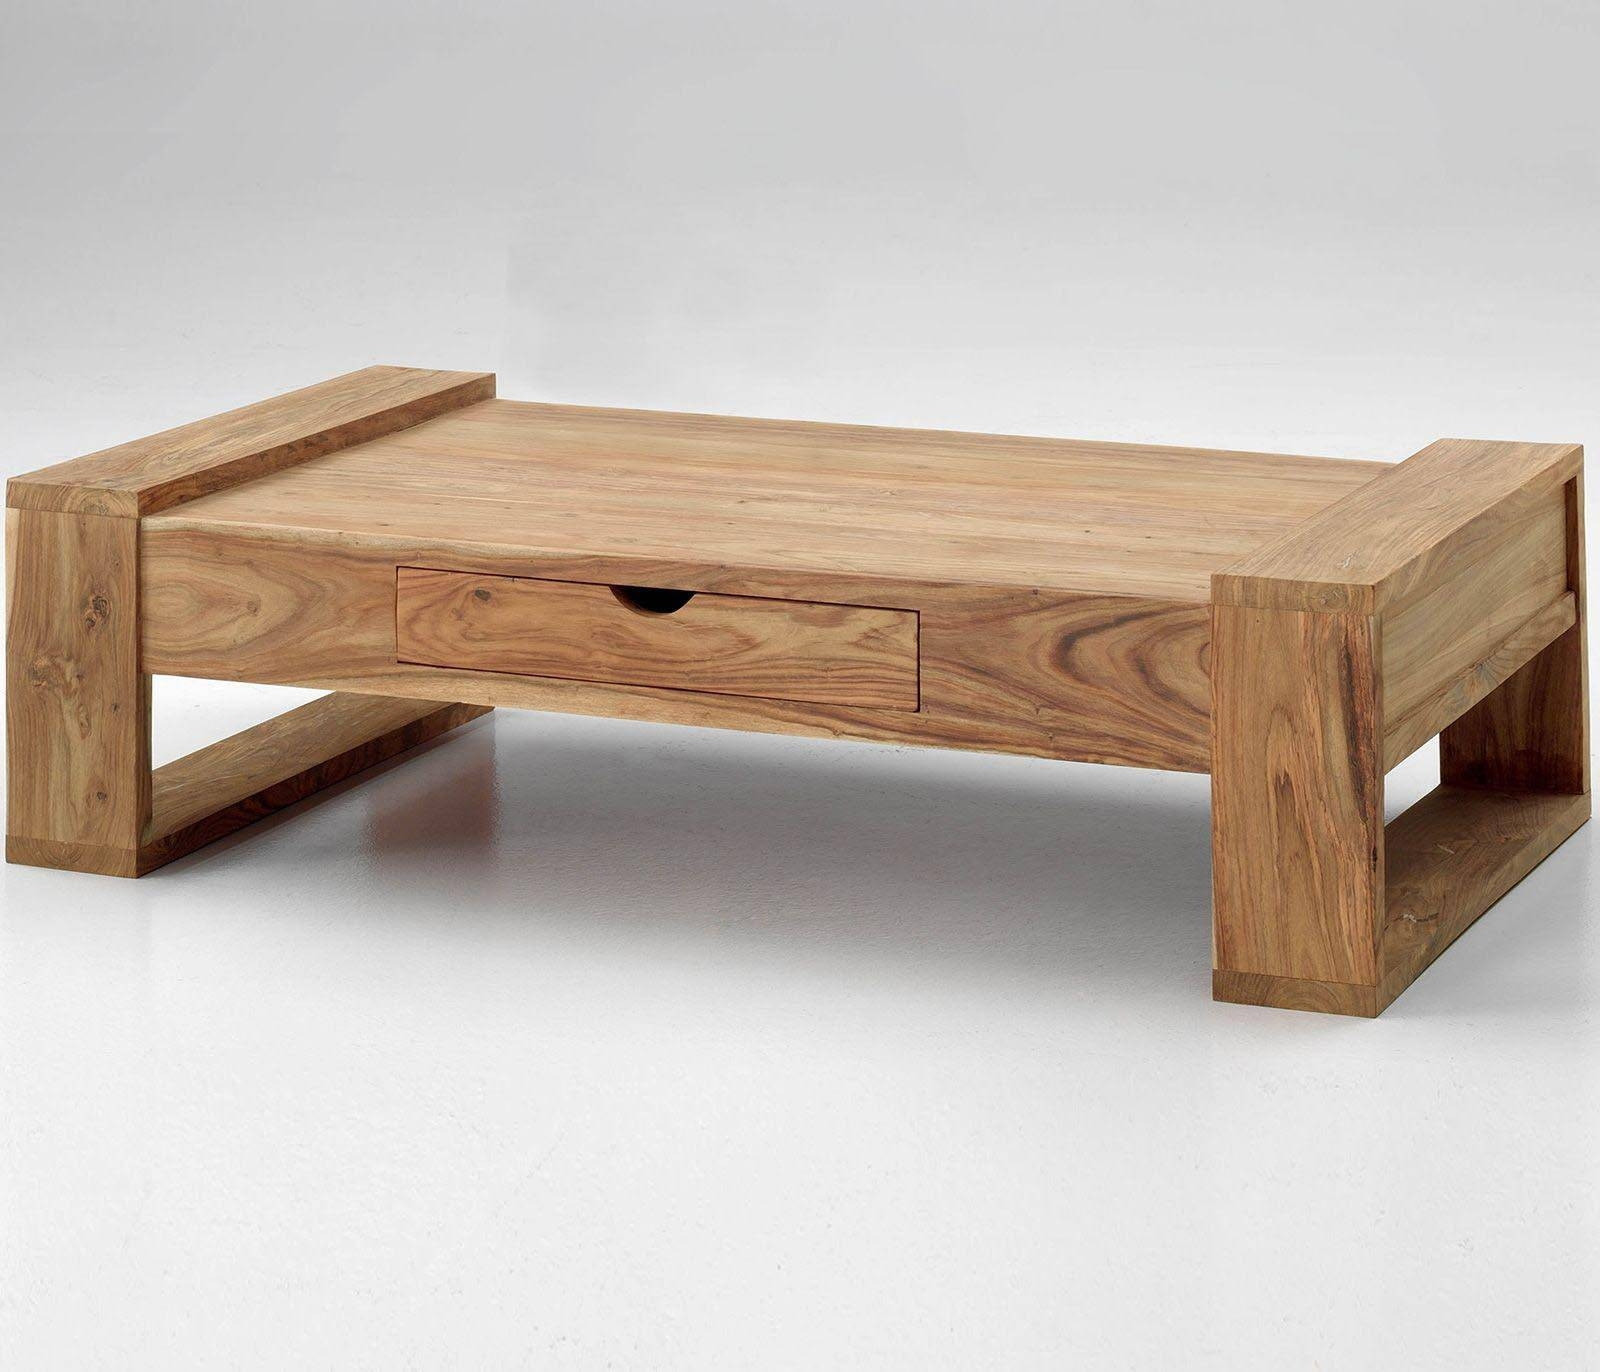 Very Low Coffee Table | Coffee Table Design Ideas With Regard To Very Low Coffee Tables (View 2 of 15)